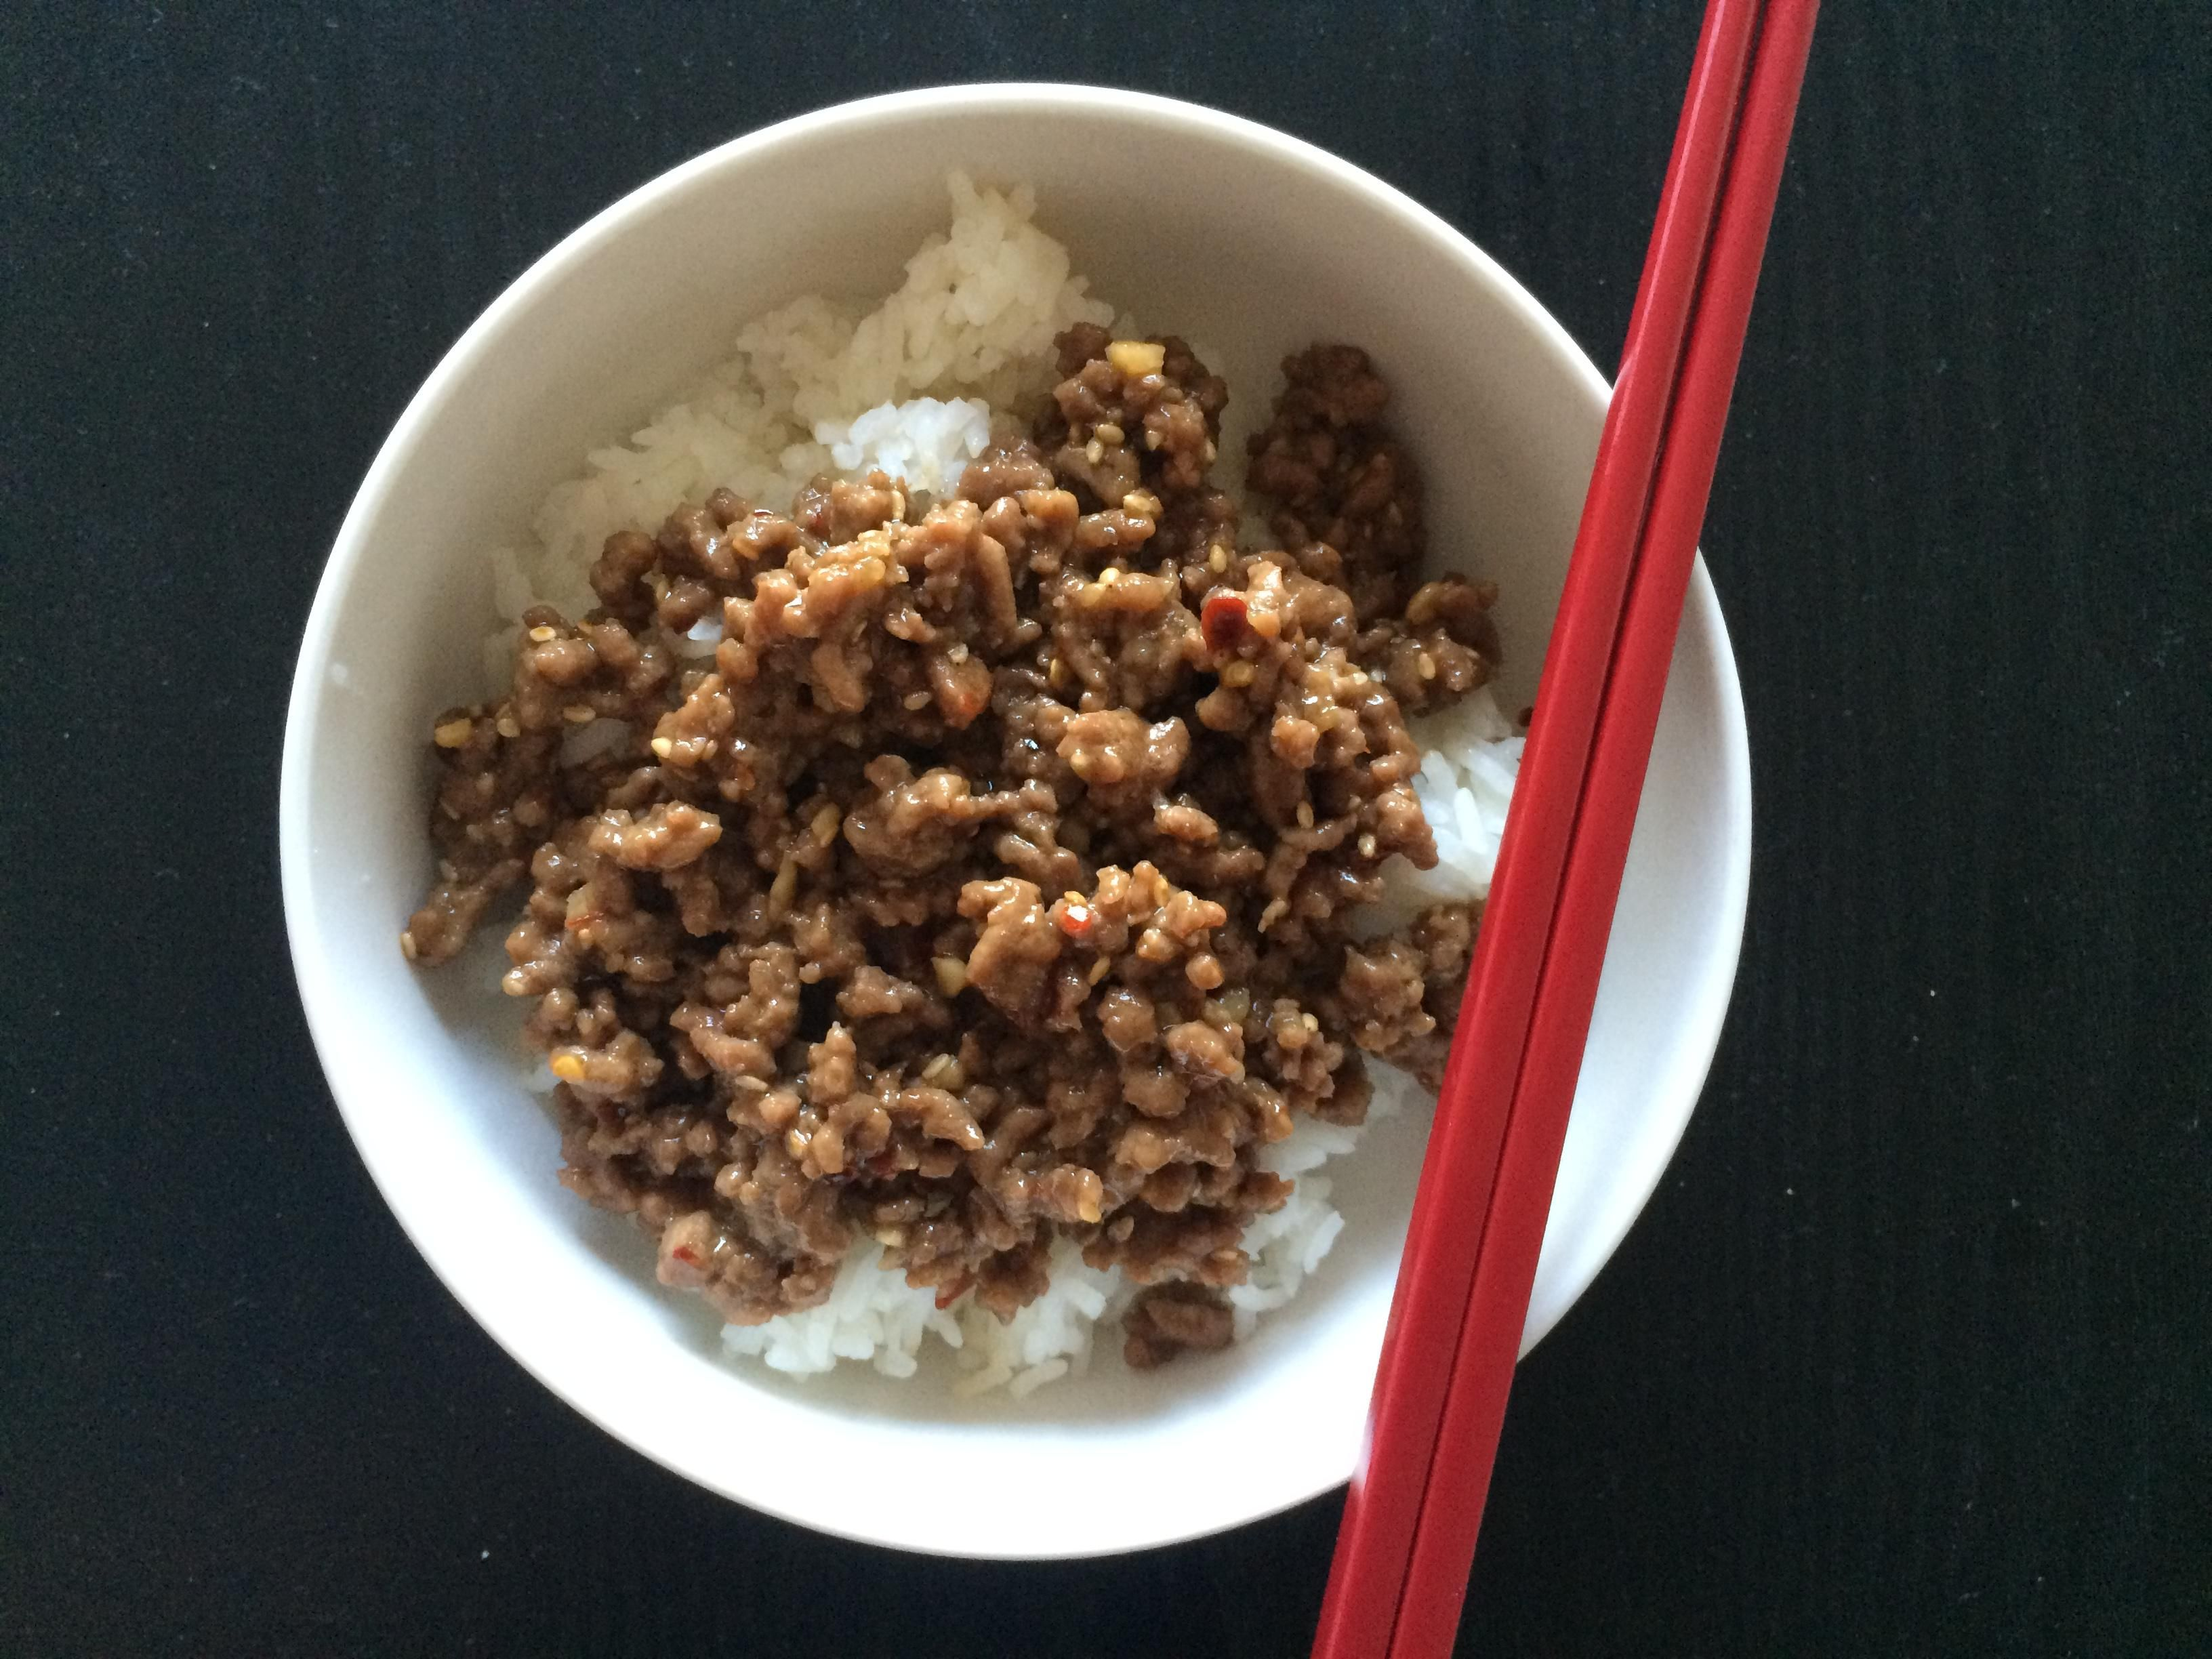 Homemade Korean Beef With Rice [Homemade] #Recipes #Food #Cooking #Delicious